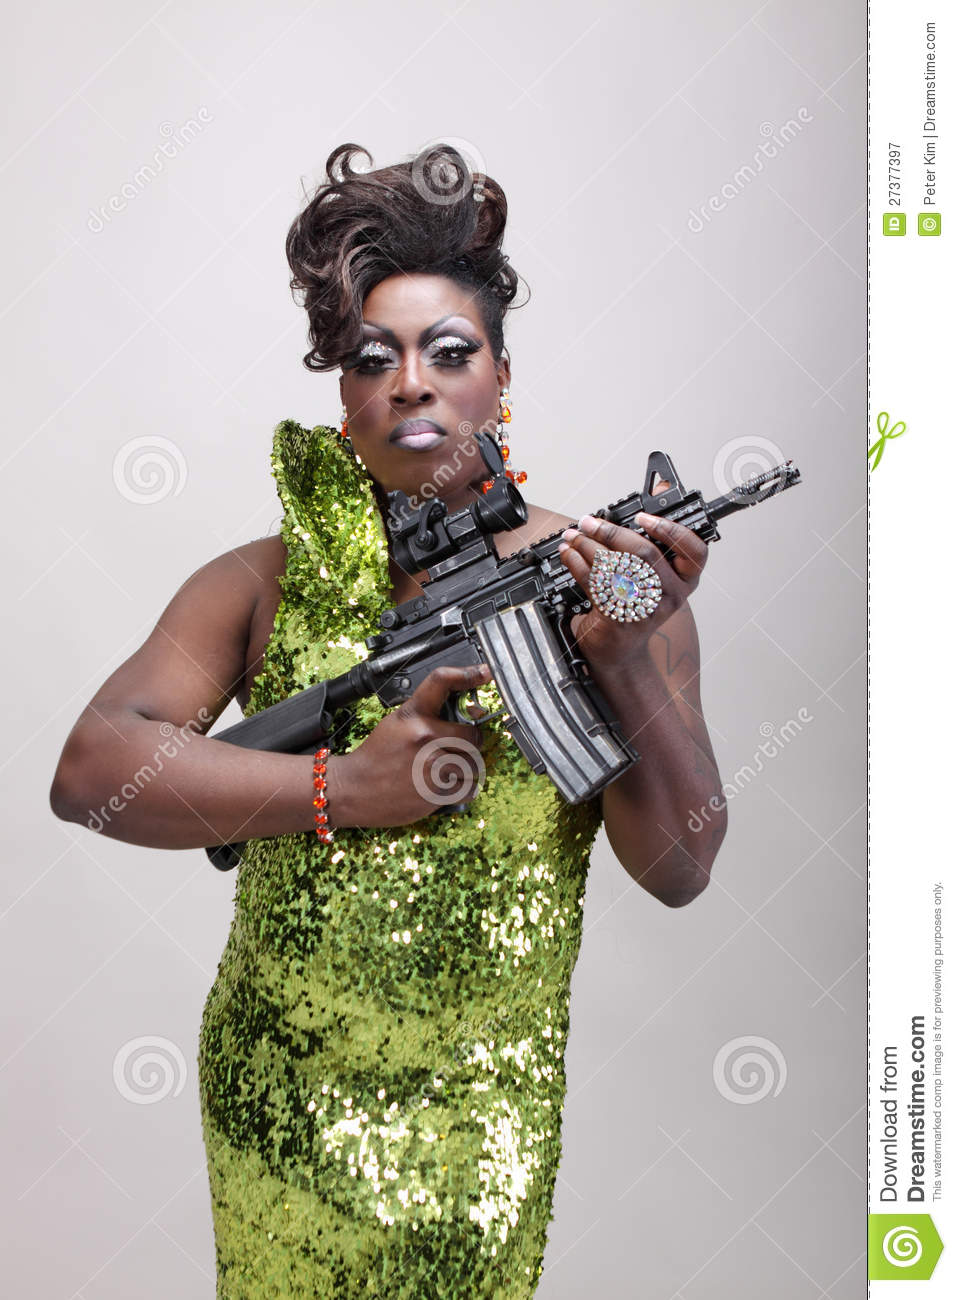 Drag Queen With Gun Stock Image Image Of American